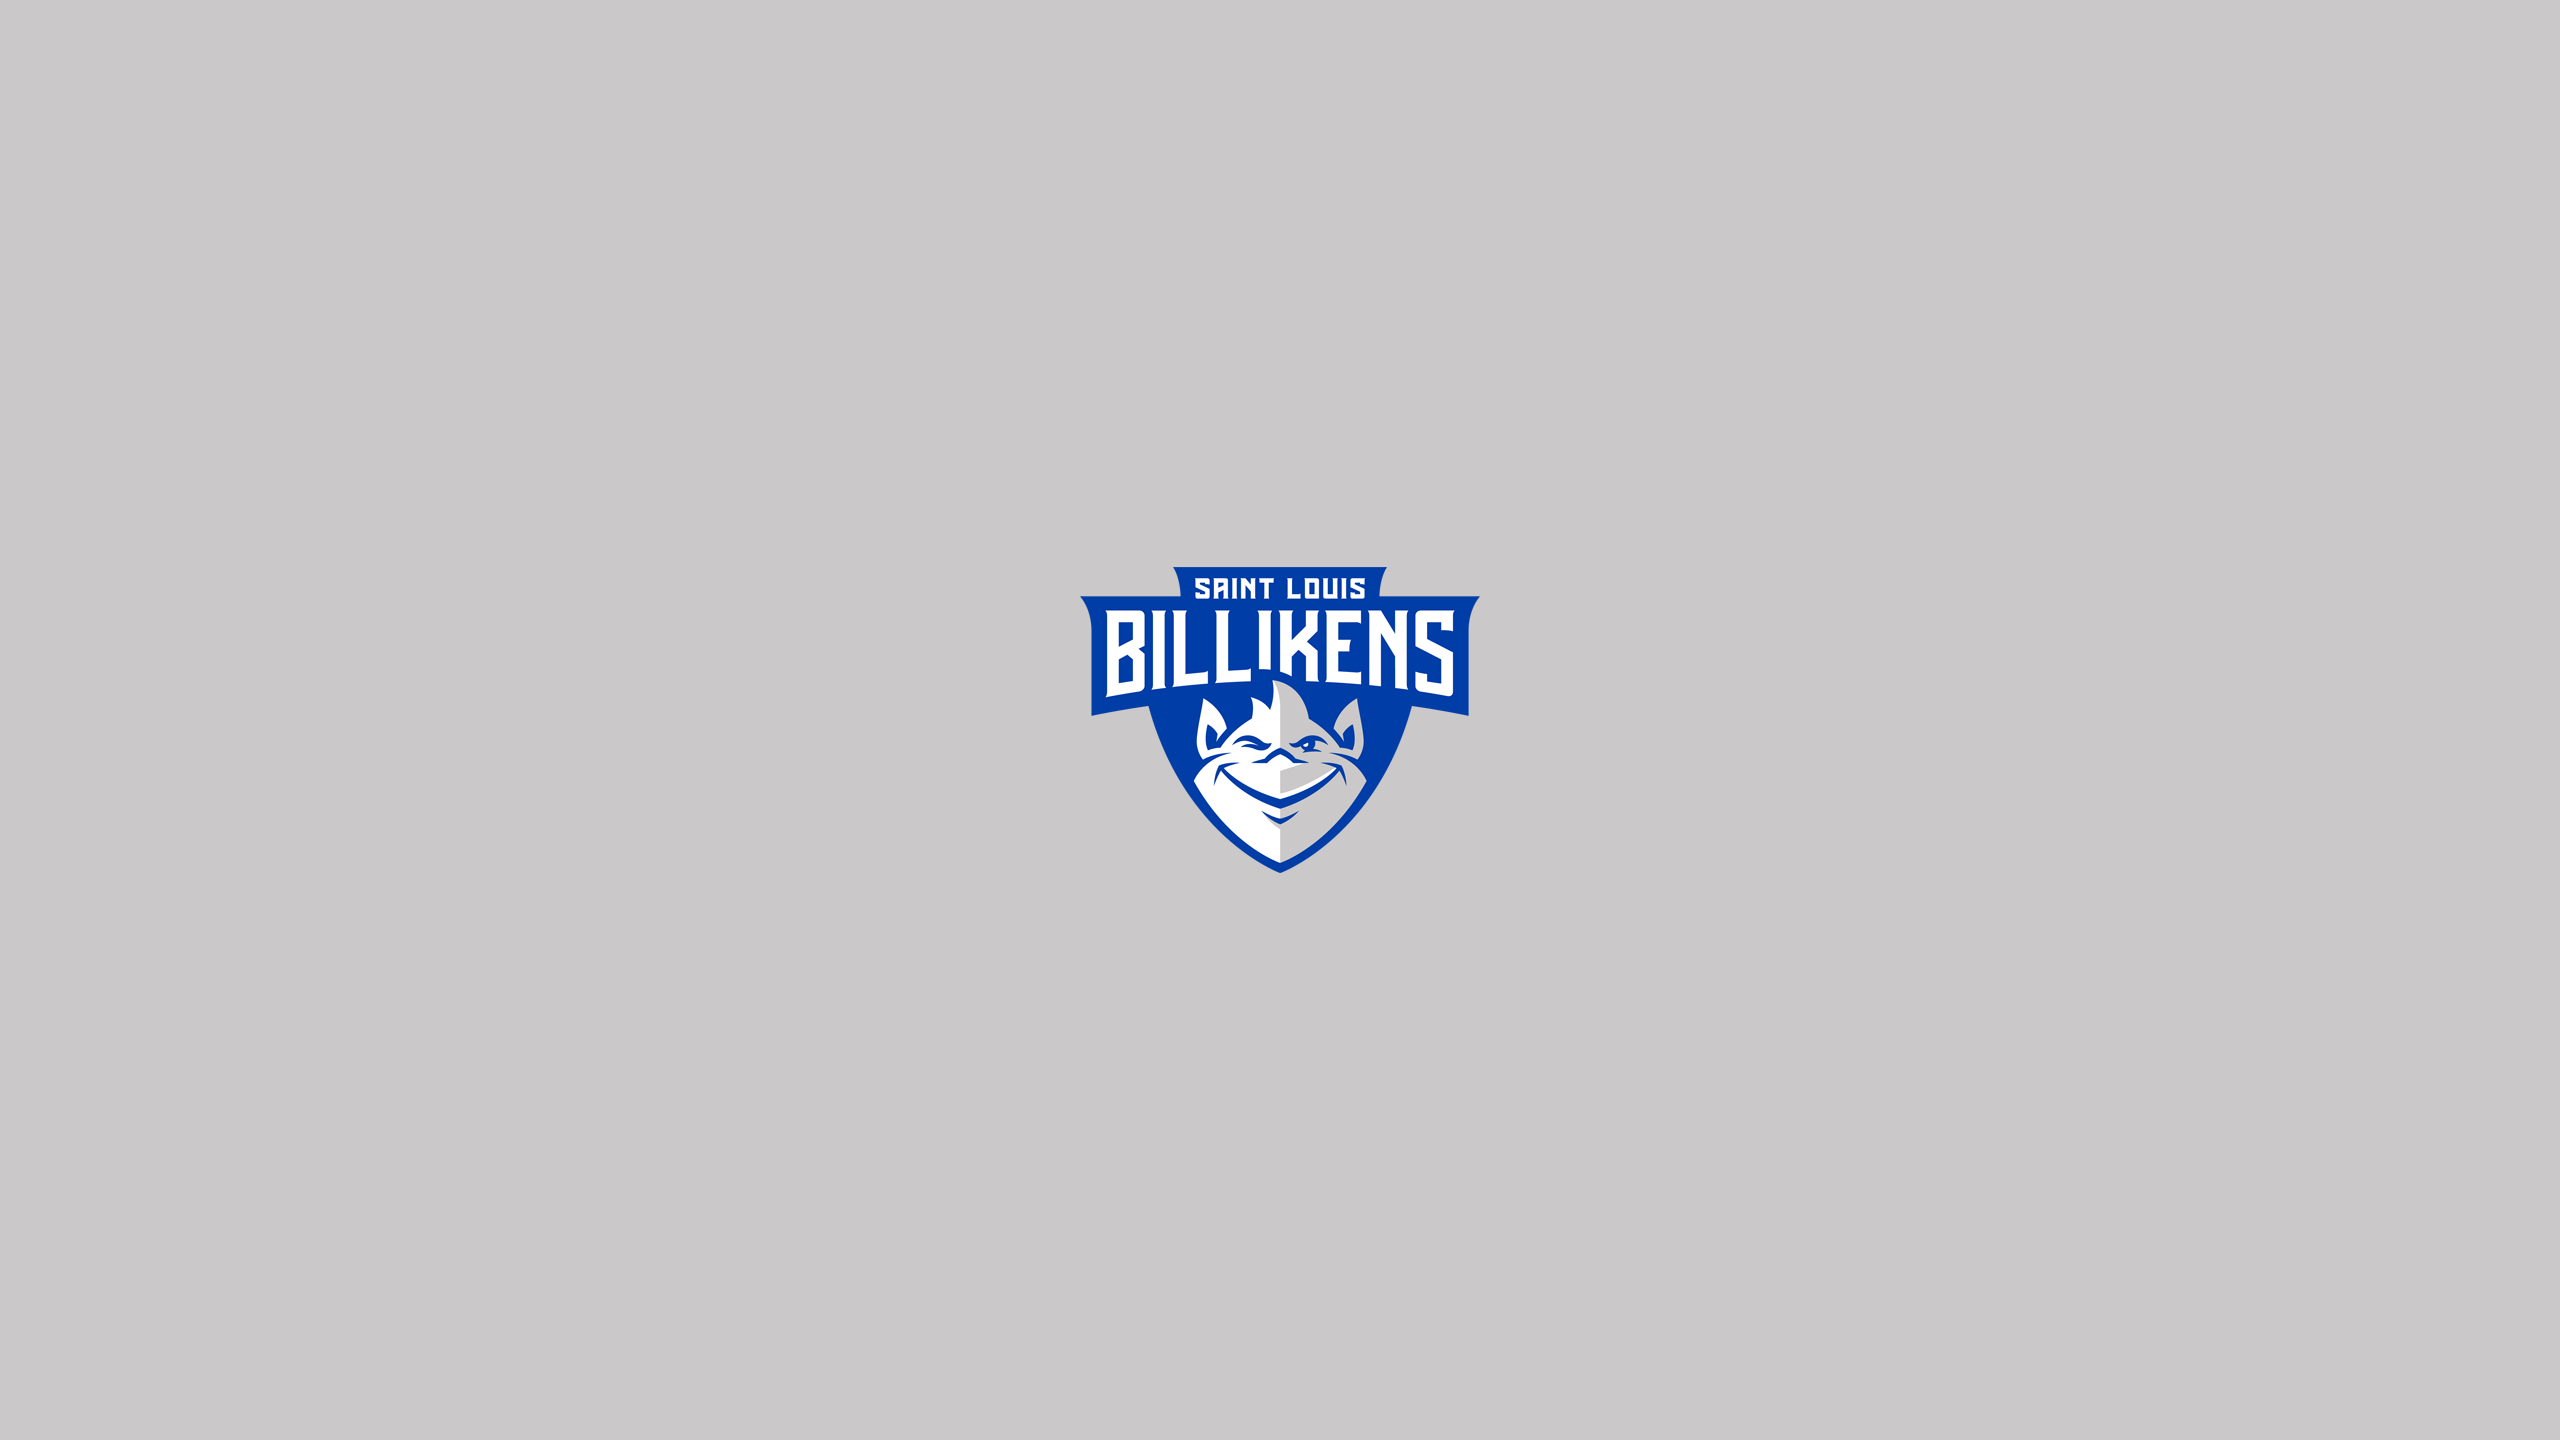 Saint Louis University Billikens